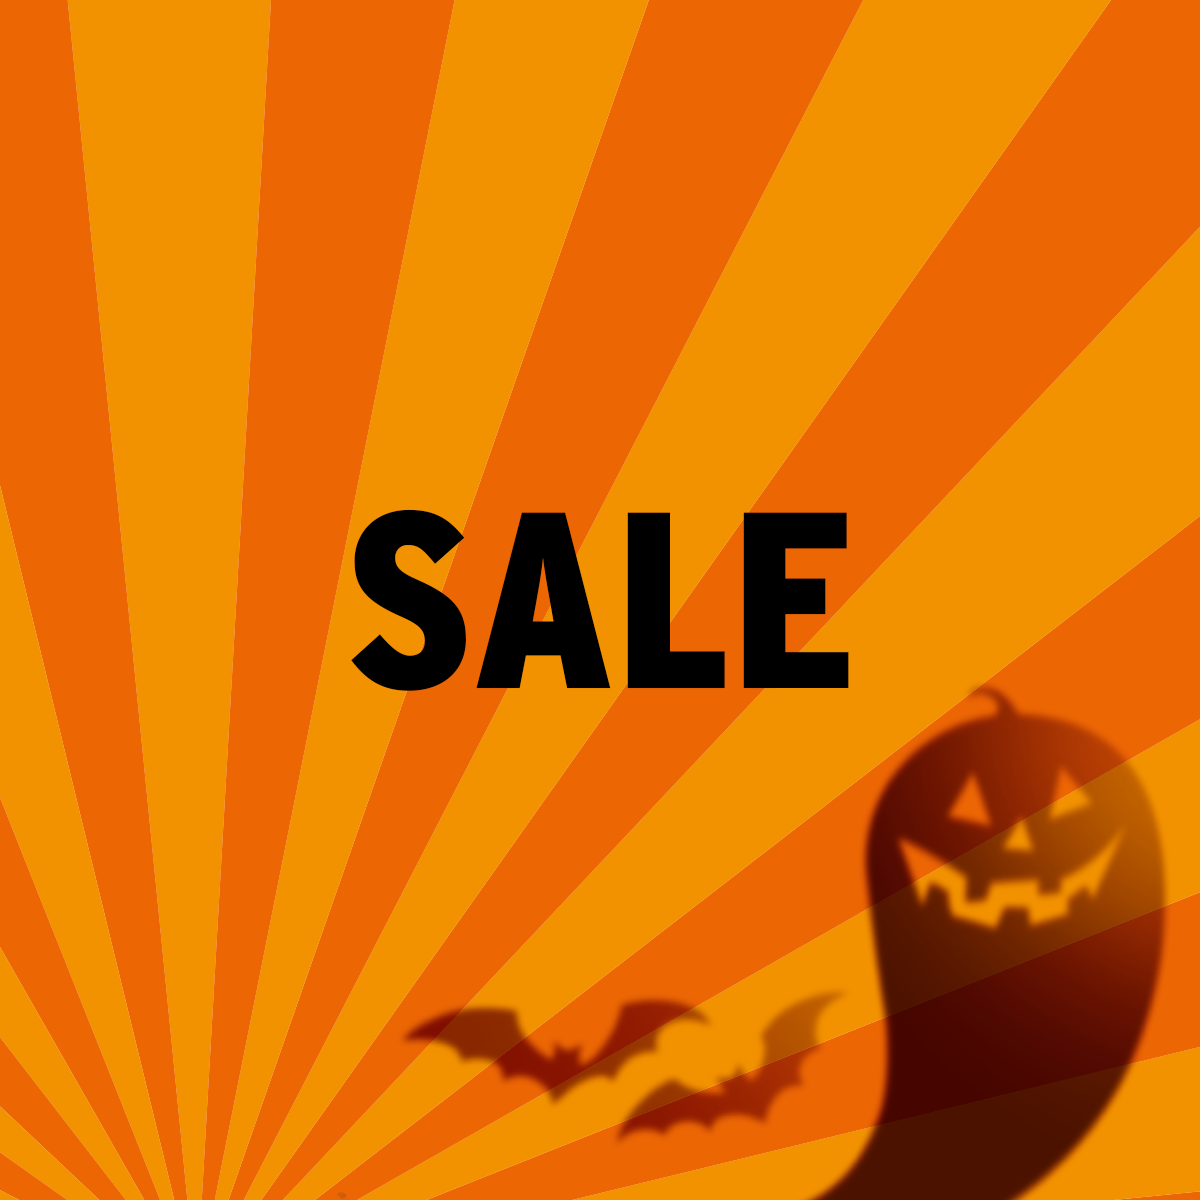 Up to 50% off at The Body Shop this Halloween